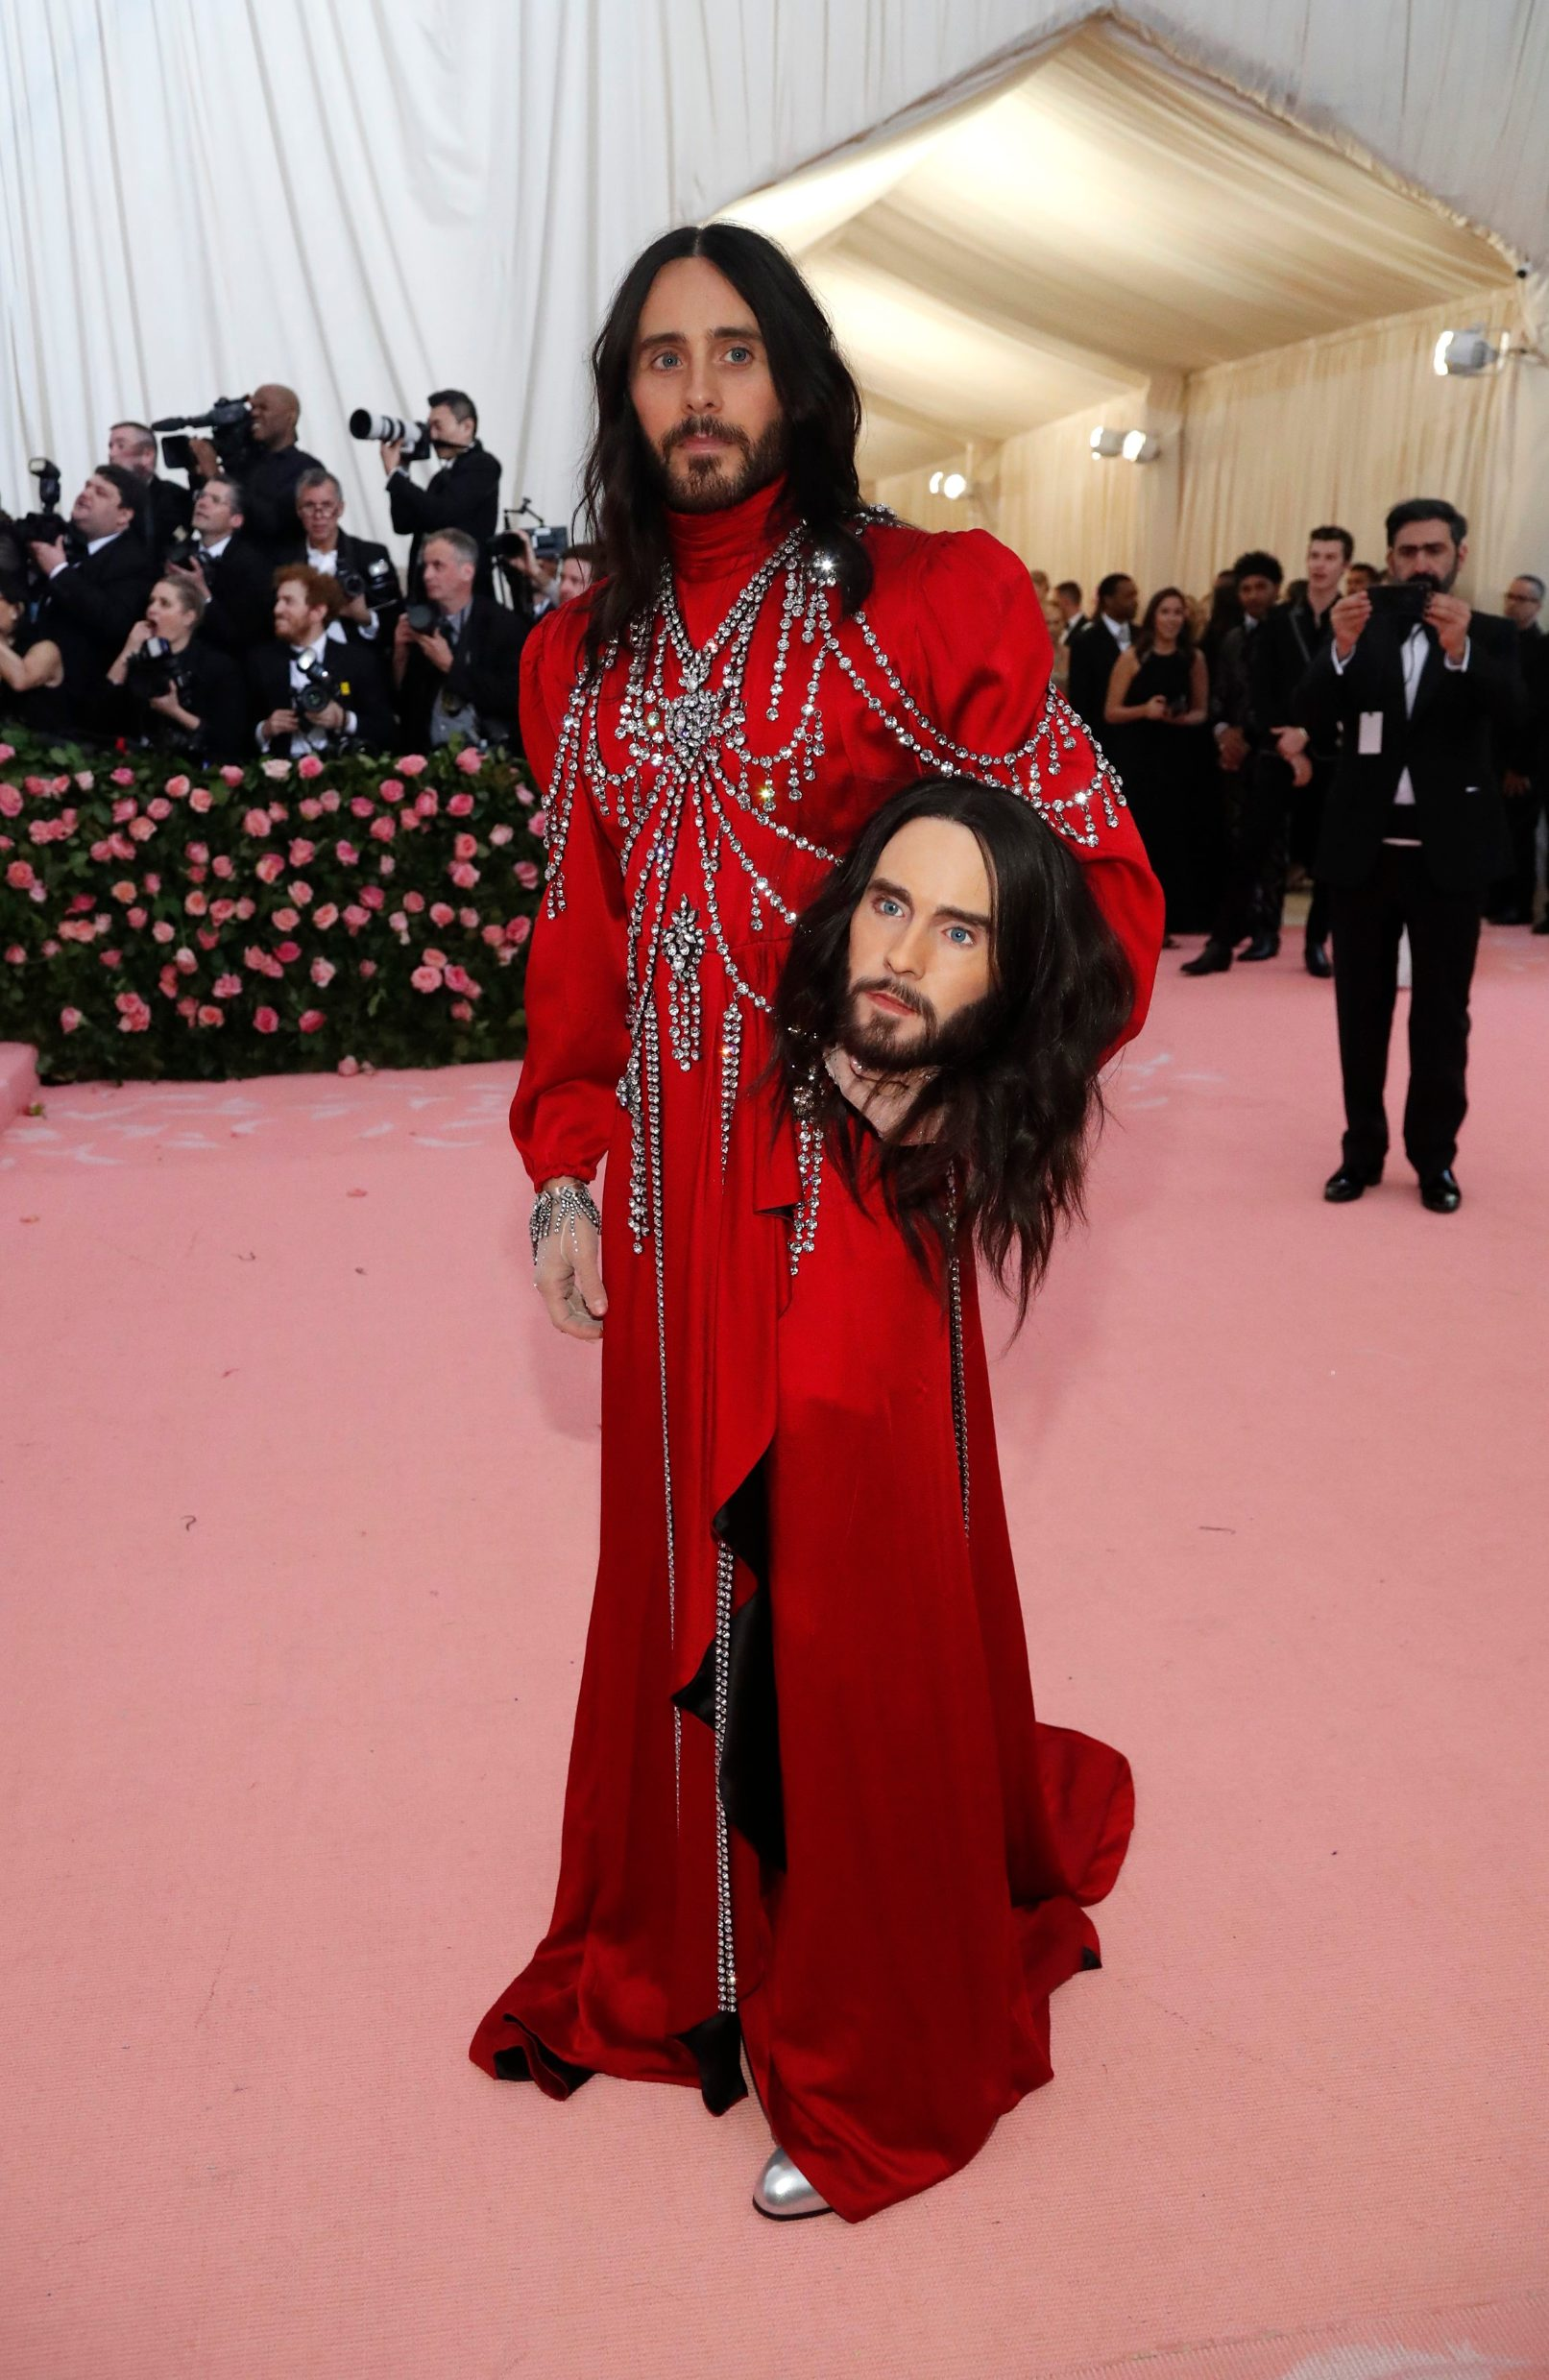 Metropolitan Museum of Art Costume Institute Gala - Met Gala-Camp: Notes on Fashion - Arrivals- New York City, U.S. - May 6, 2019 - Jared Leto. REUTERS/Mario Anzuoni